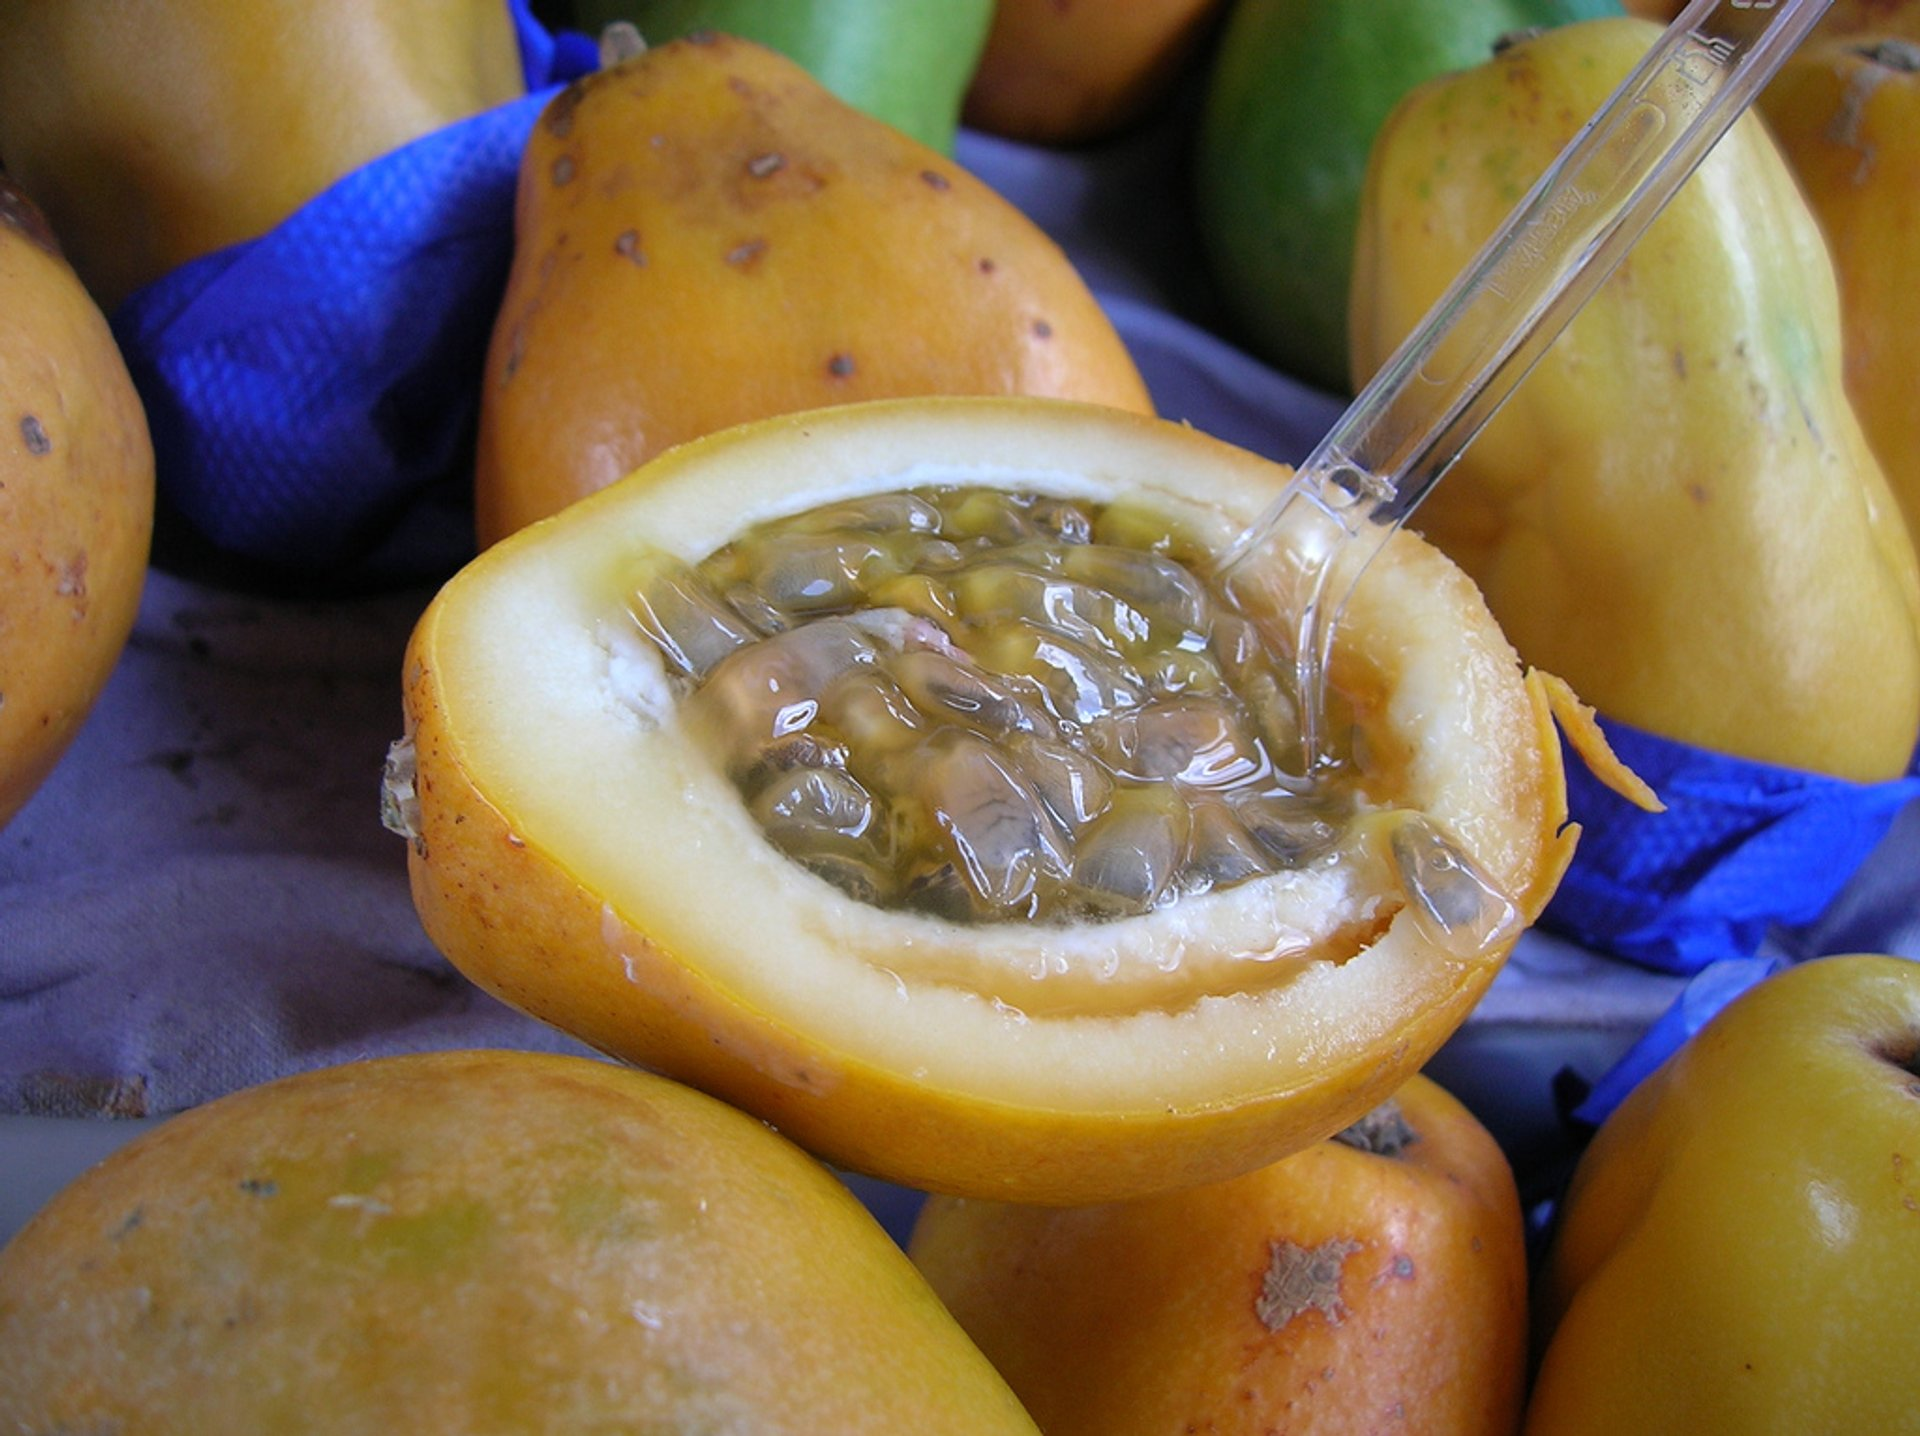 Passionfruit in New Zealand 2020 - Best Time